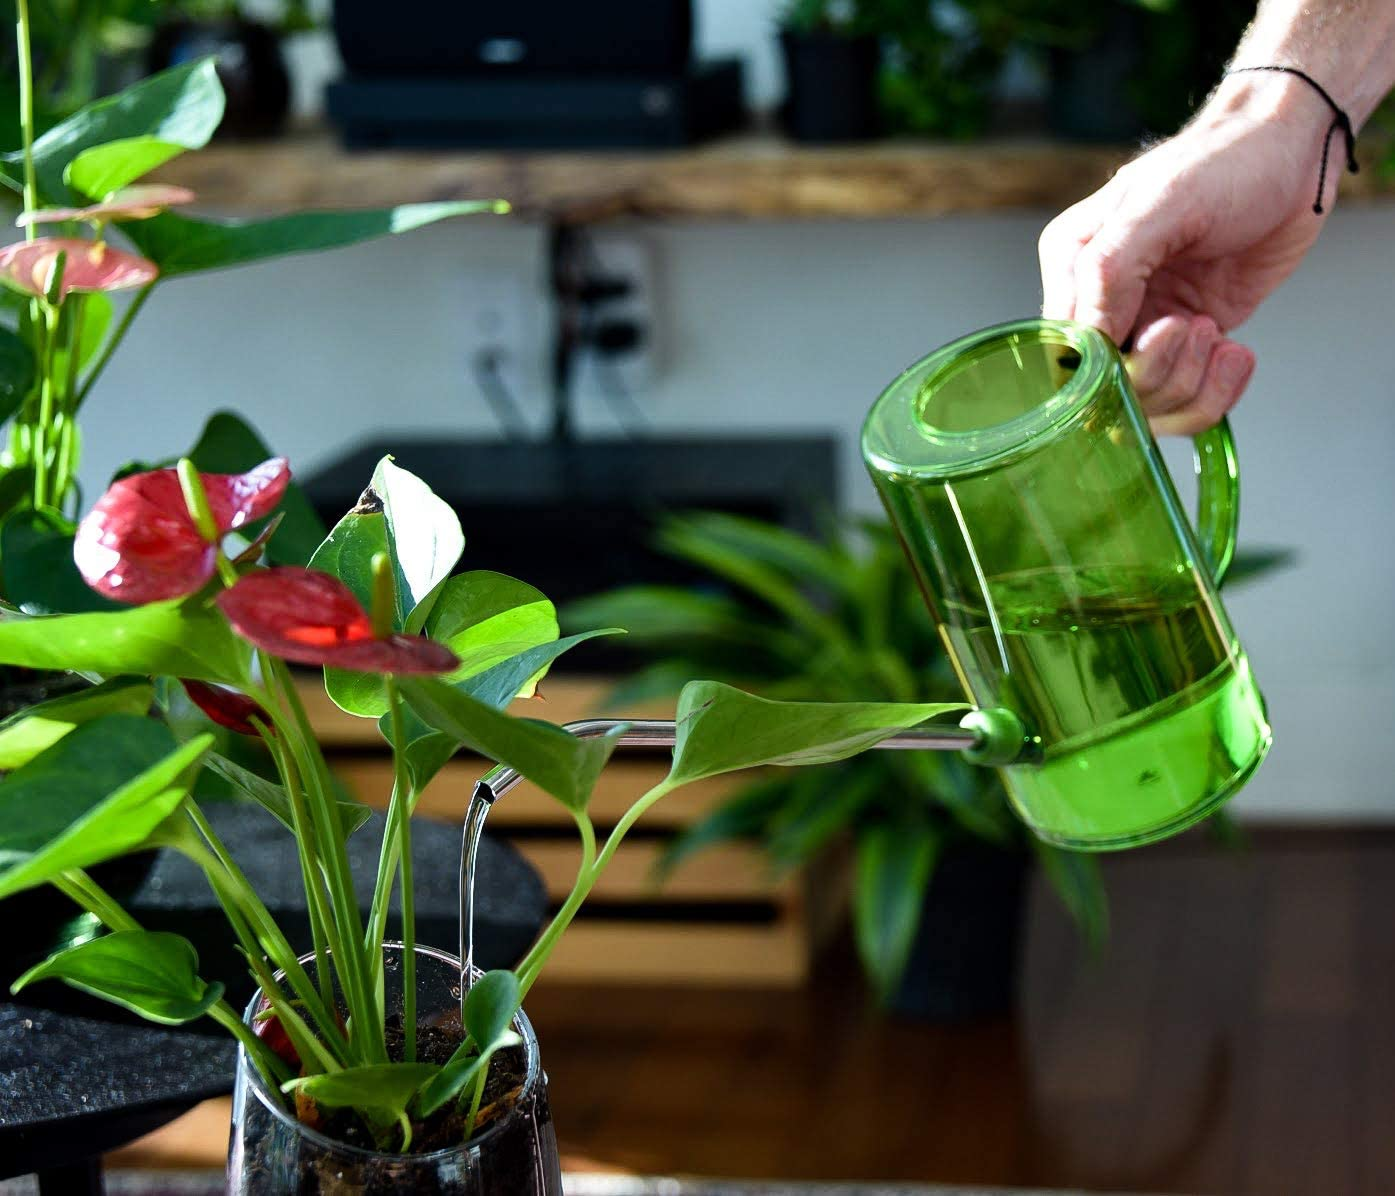 Brilliest Watering Can for Indoor/Outdoor Plants – Long Spout Stainless Steel – Plastic - Easy Measure - Modern - Succulents/Airplants/Houseplants/Outside Gardening (Green) : Garden & Outdoor